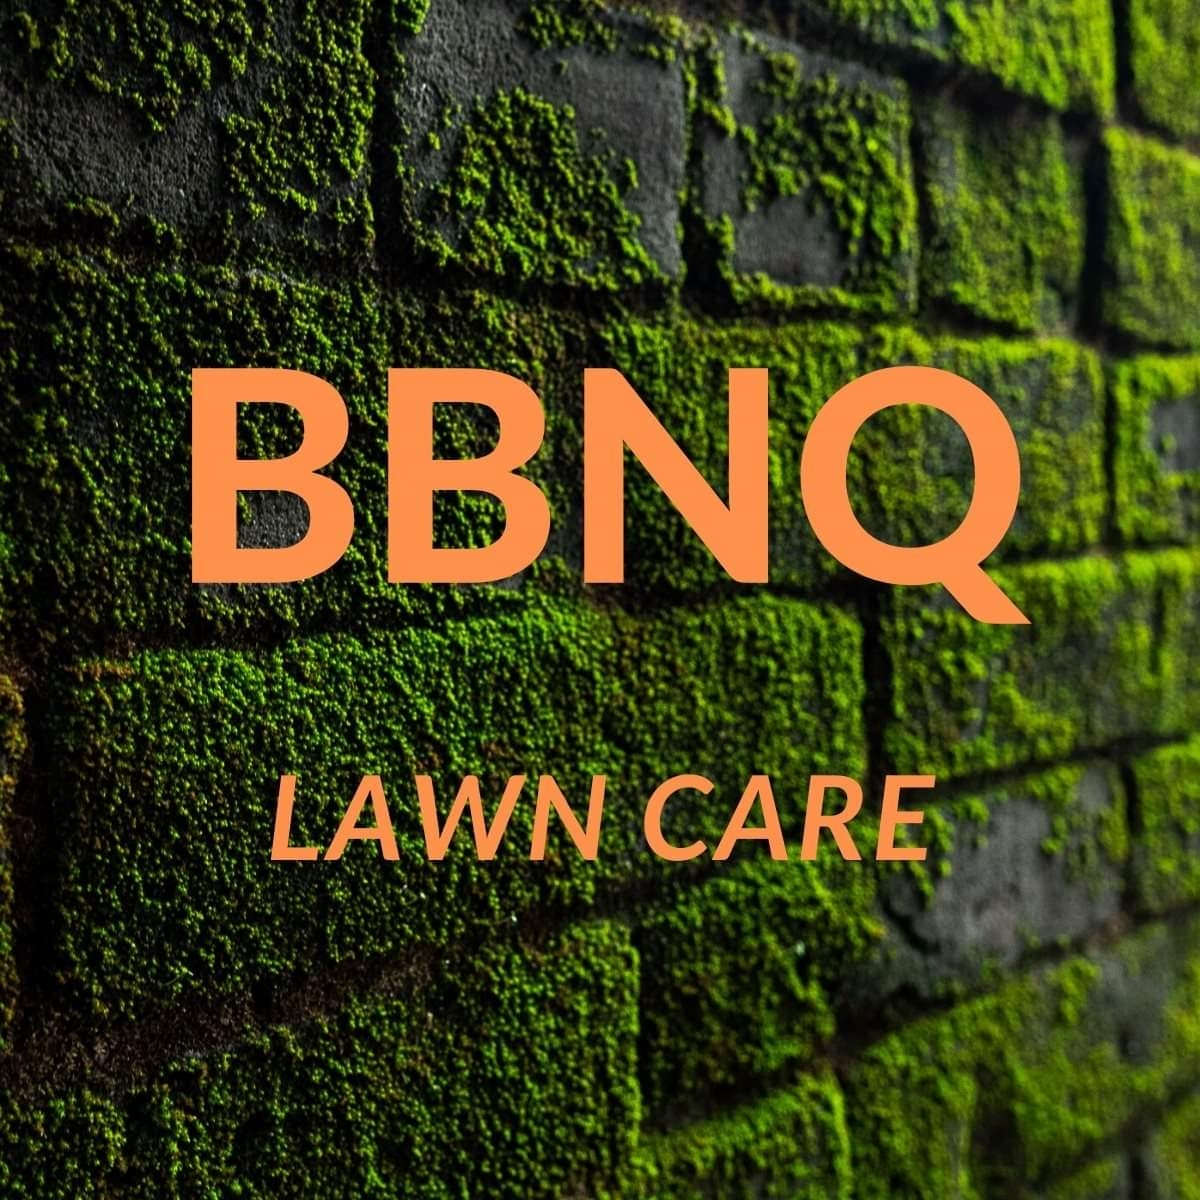 BBNQ Lawn Care